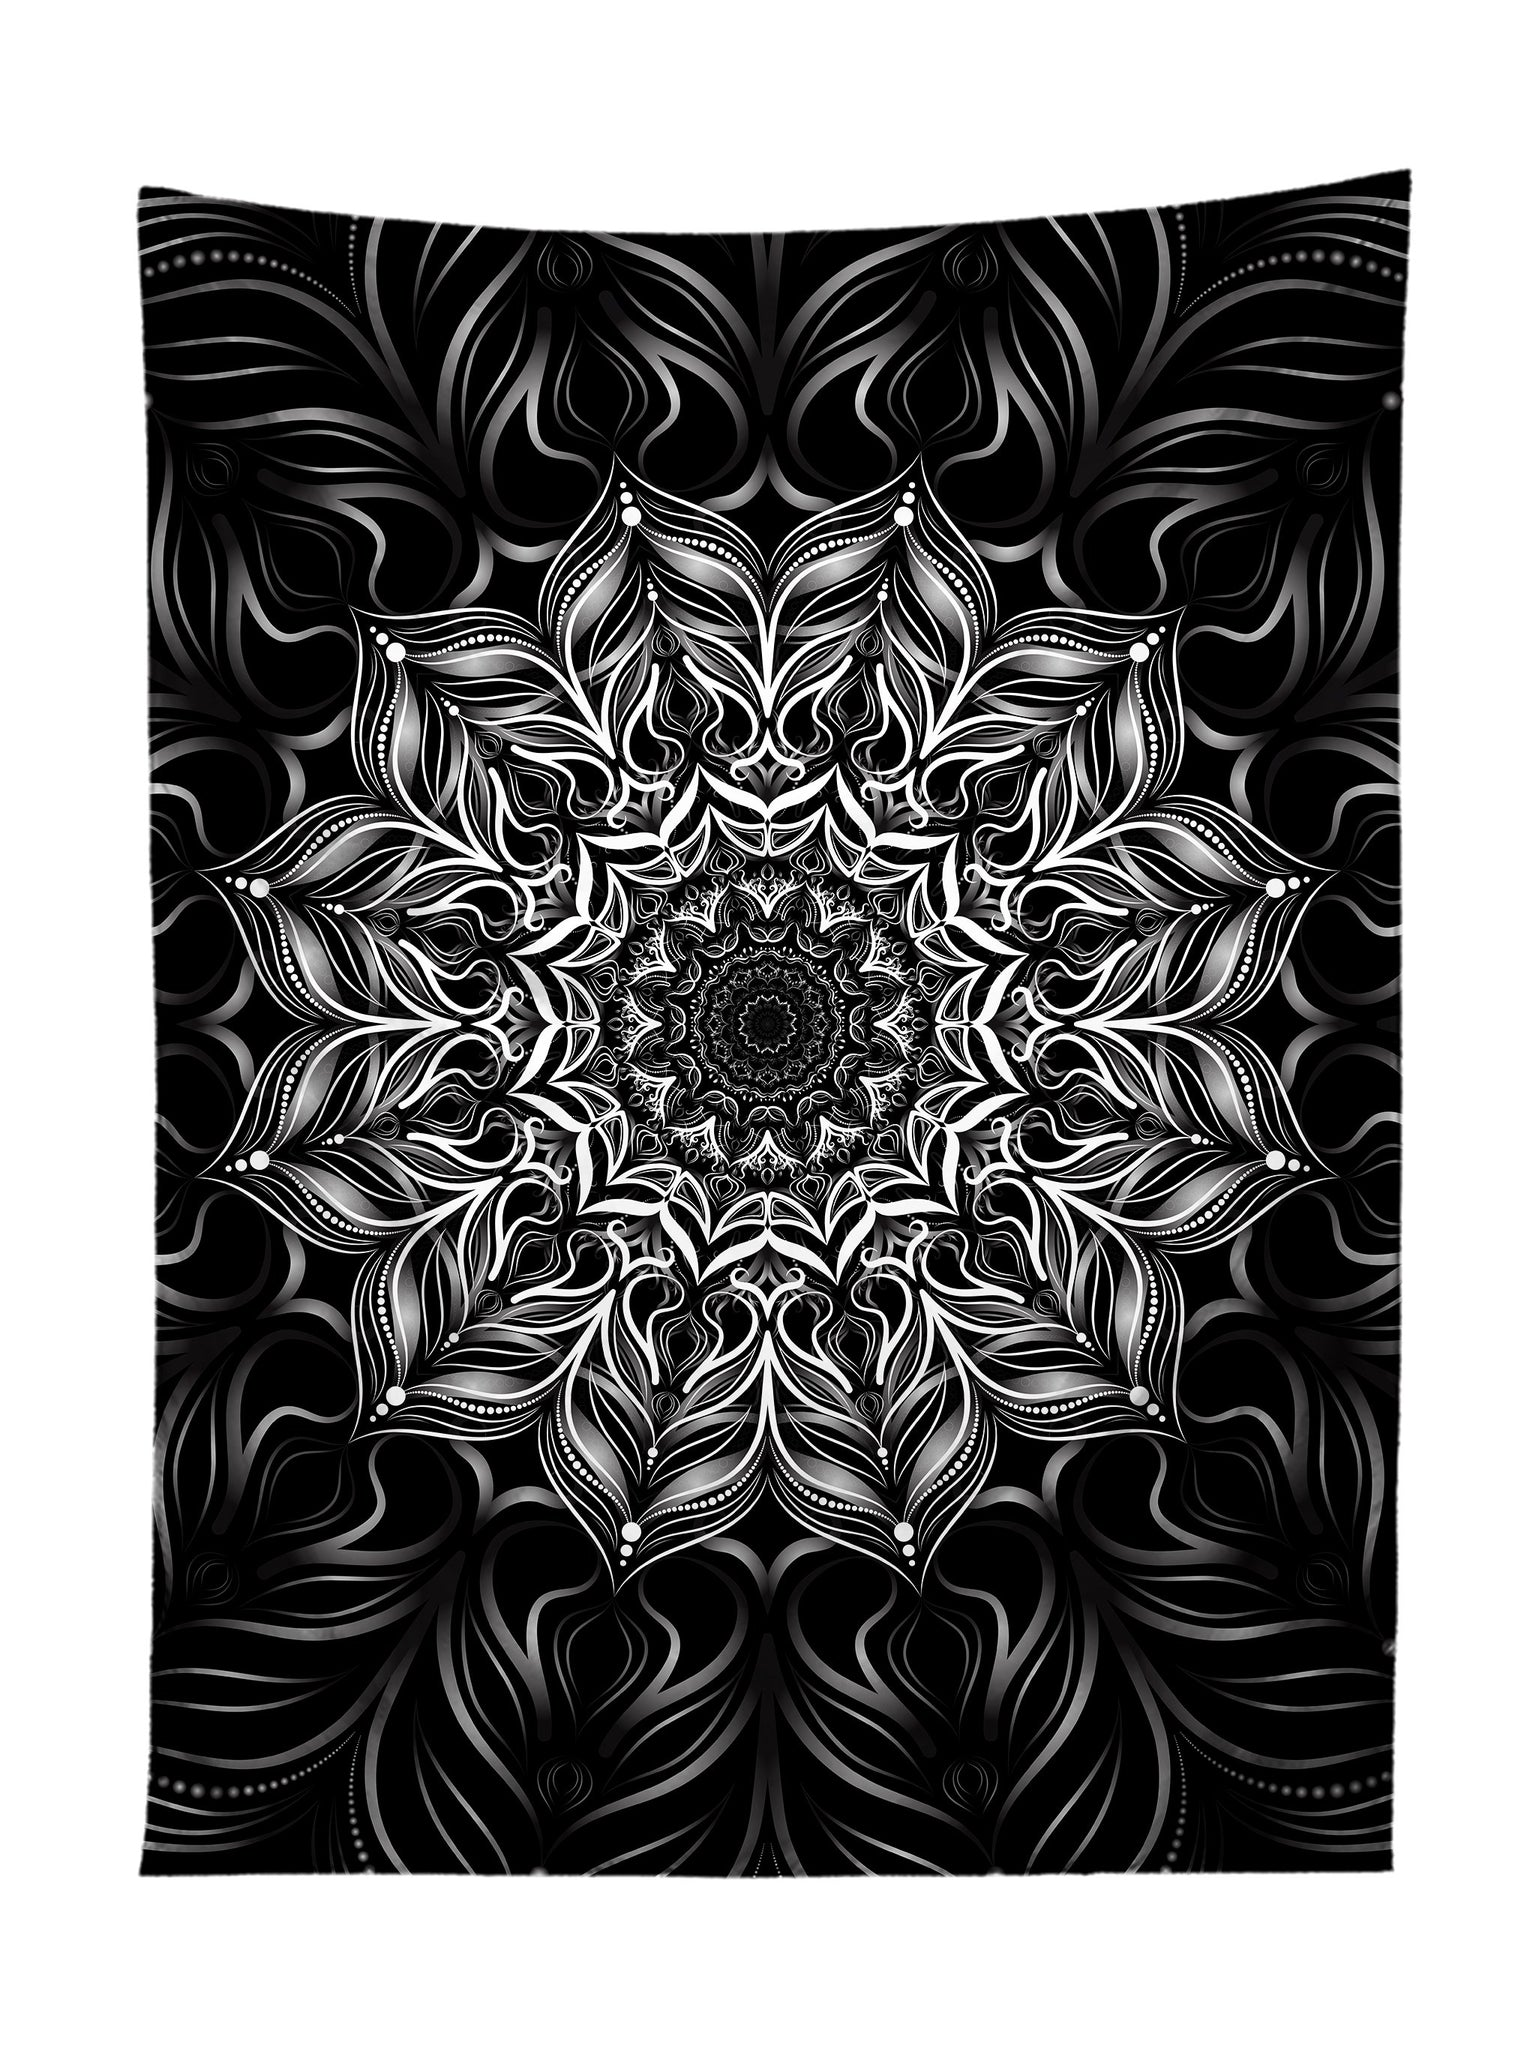 Vertical hanging view of all over print black & white mandala tapestry by GratefullyDyed Apparel.